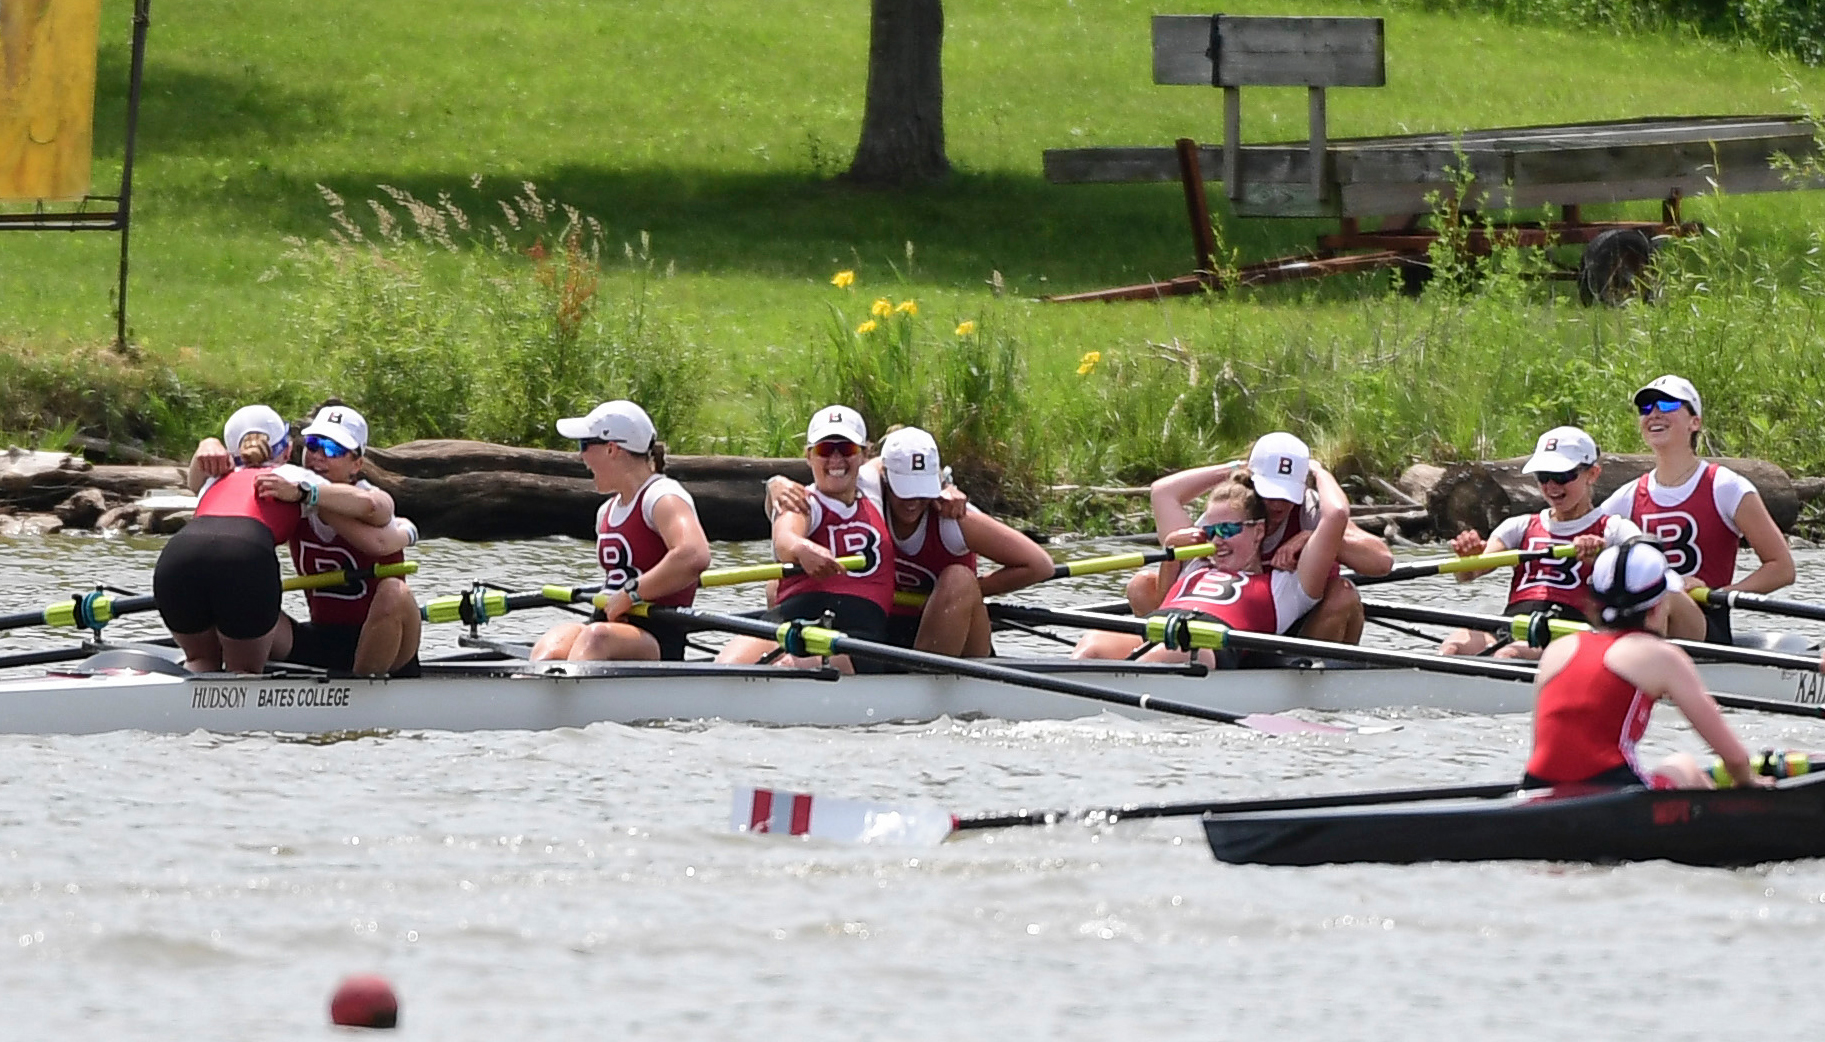 INDIANAPOLIS, IN - JUNE 01: Bates College celebrates winning the First Eights Grand Final during the Division III Women's Rowing Championship held at the Indianapolis Rowing Center on June 1, 2019 in Indianapolis, Indiana. (Photo by Justin Tafoya/NCAA Photos via Getty Images)